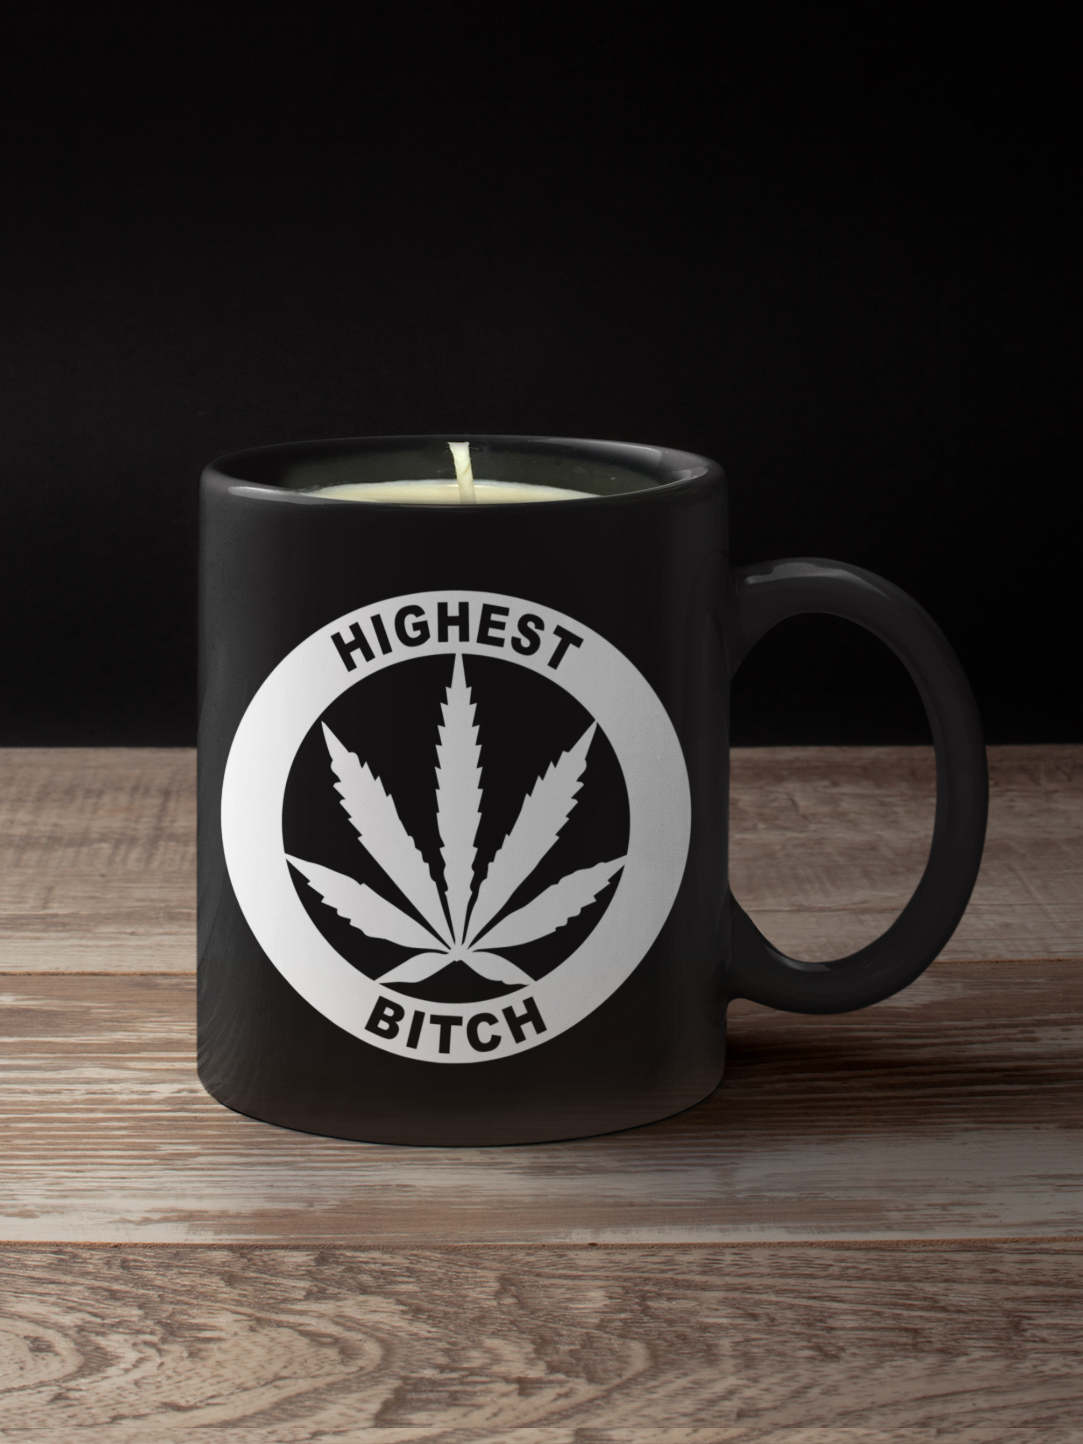 just get high_coffee mug_highest bitch_candle black